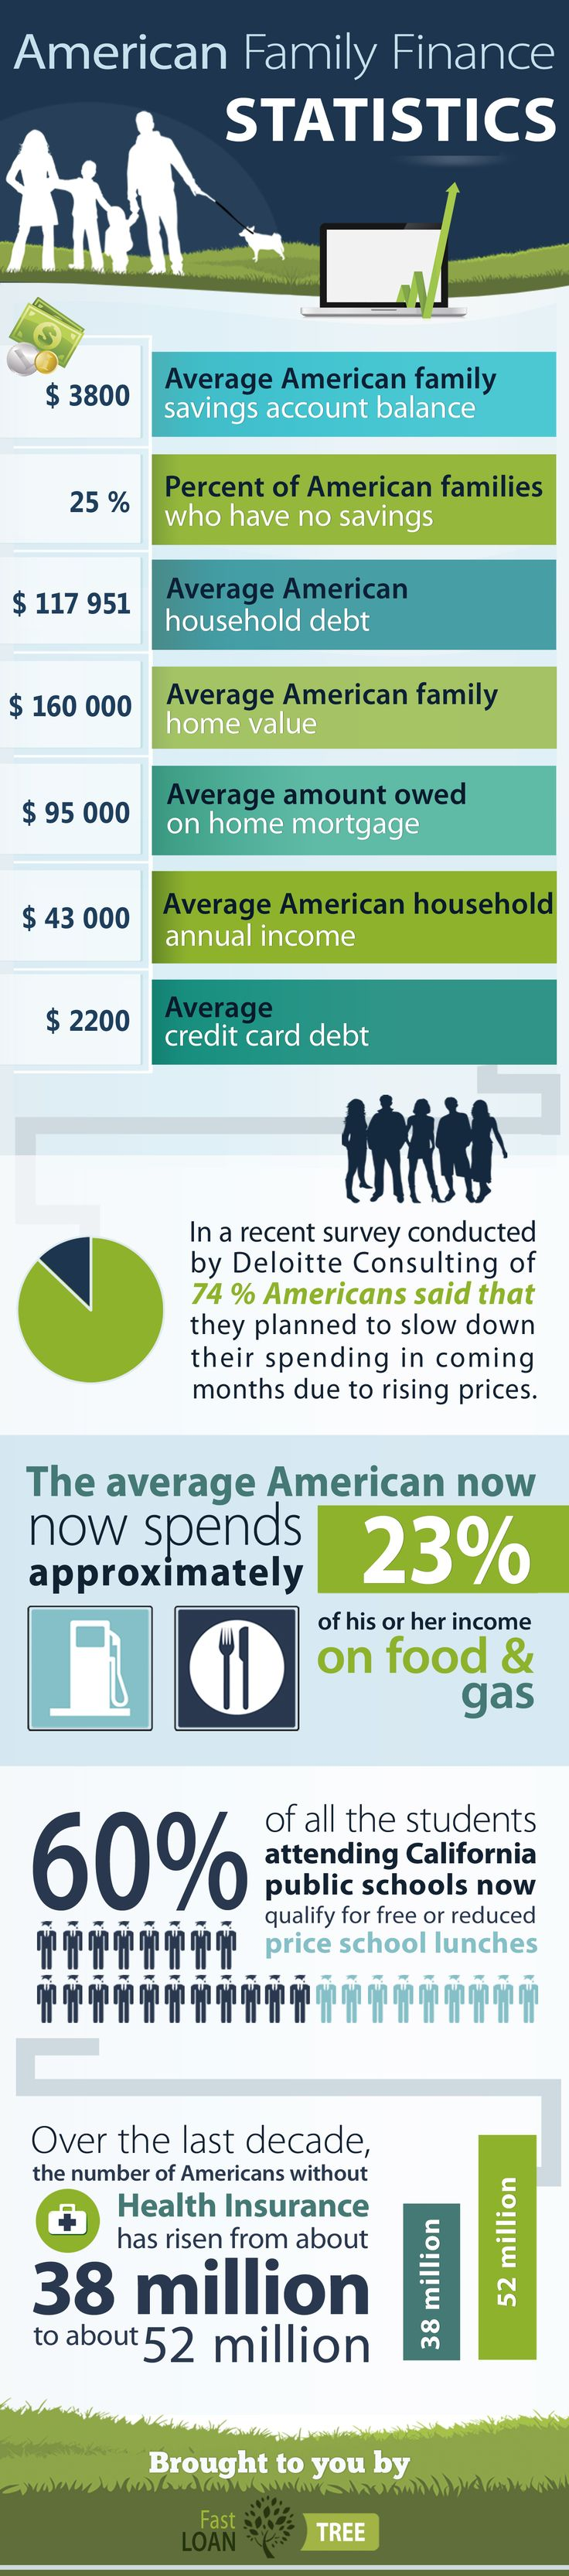 American Auto Finance >> The given infographic represents the statistics of American Family Statistics Finance: an ...